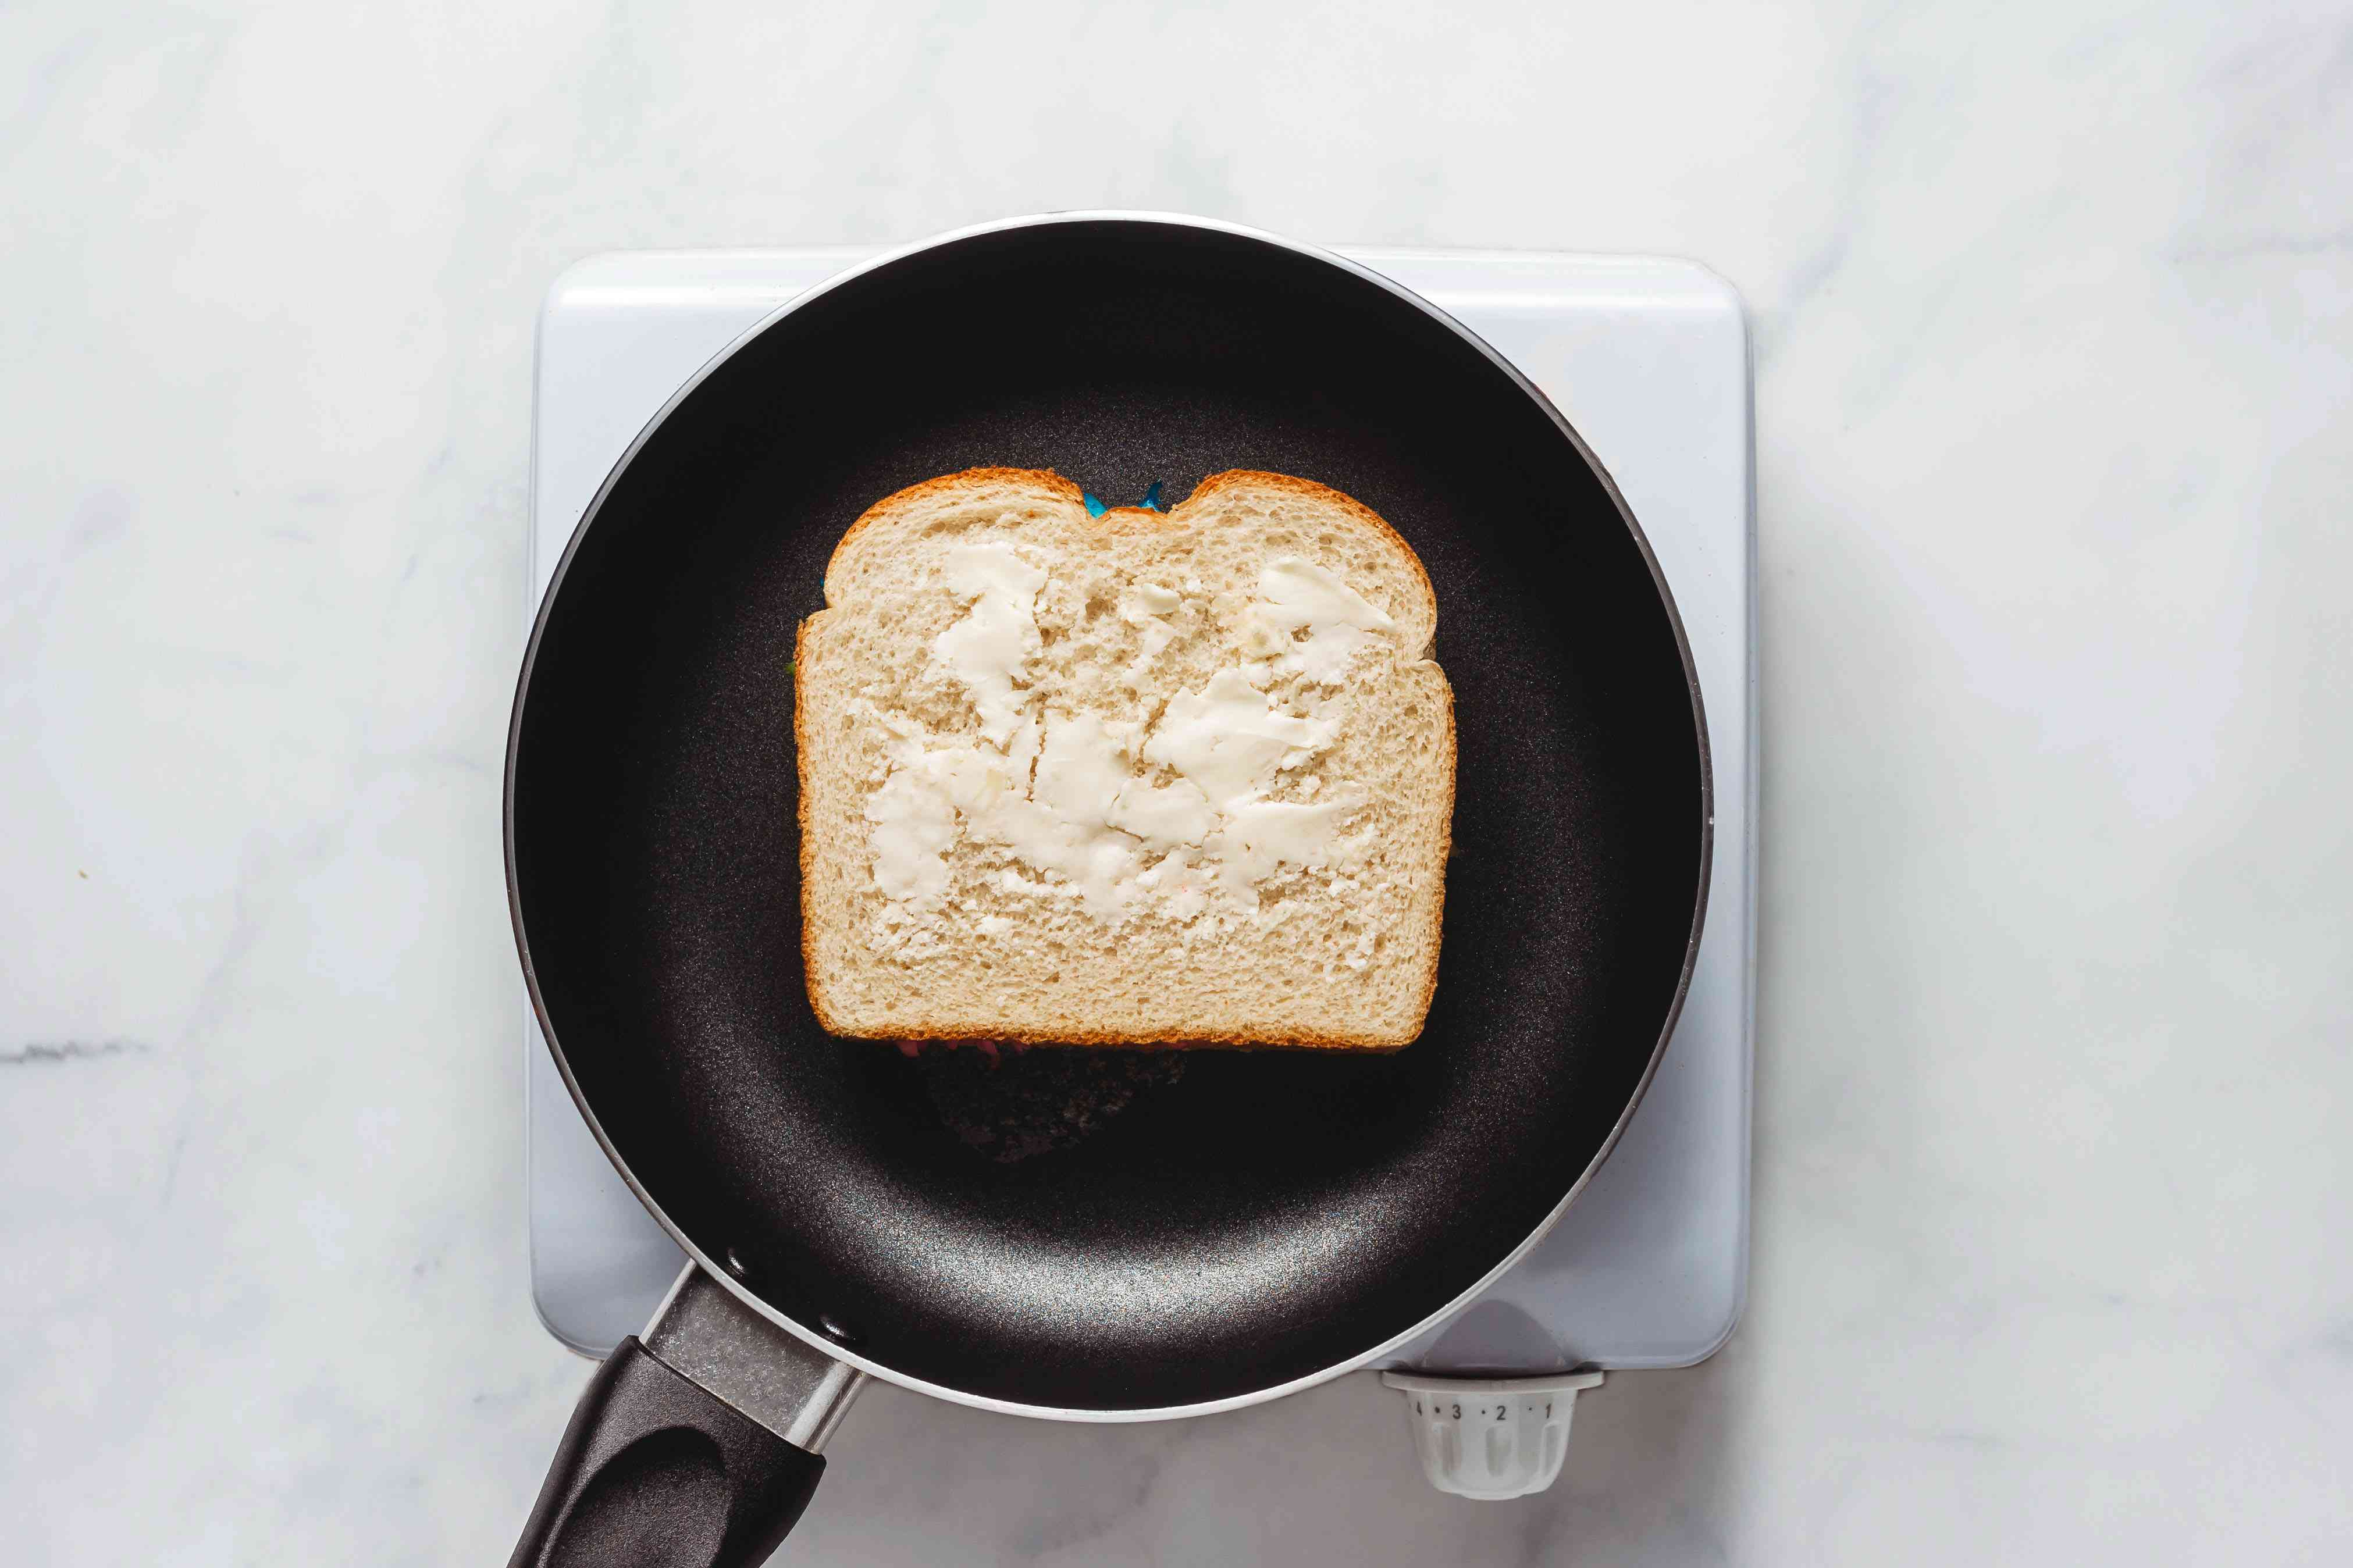 grilled cheese in pan with butter being cooked